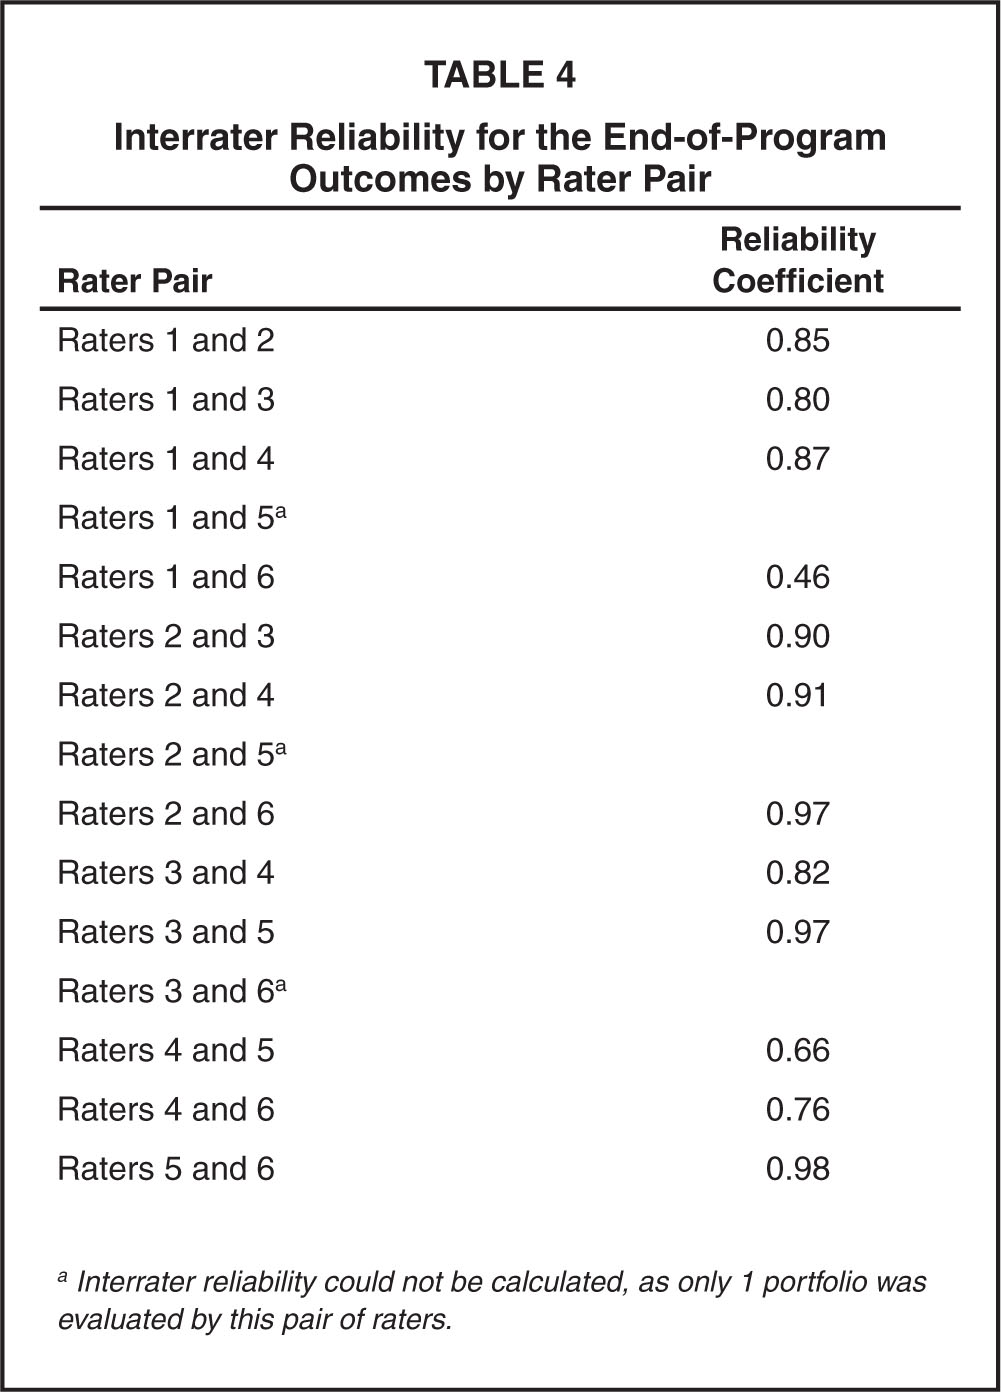 Interrater Reliability for the End-of-Program Outcomes by Rater Pair